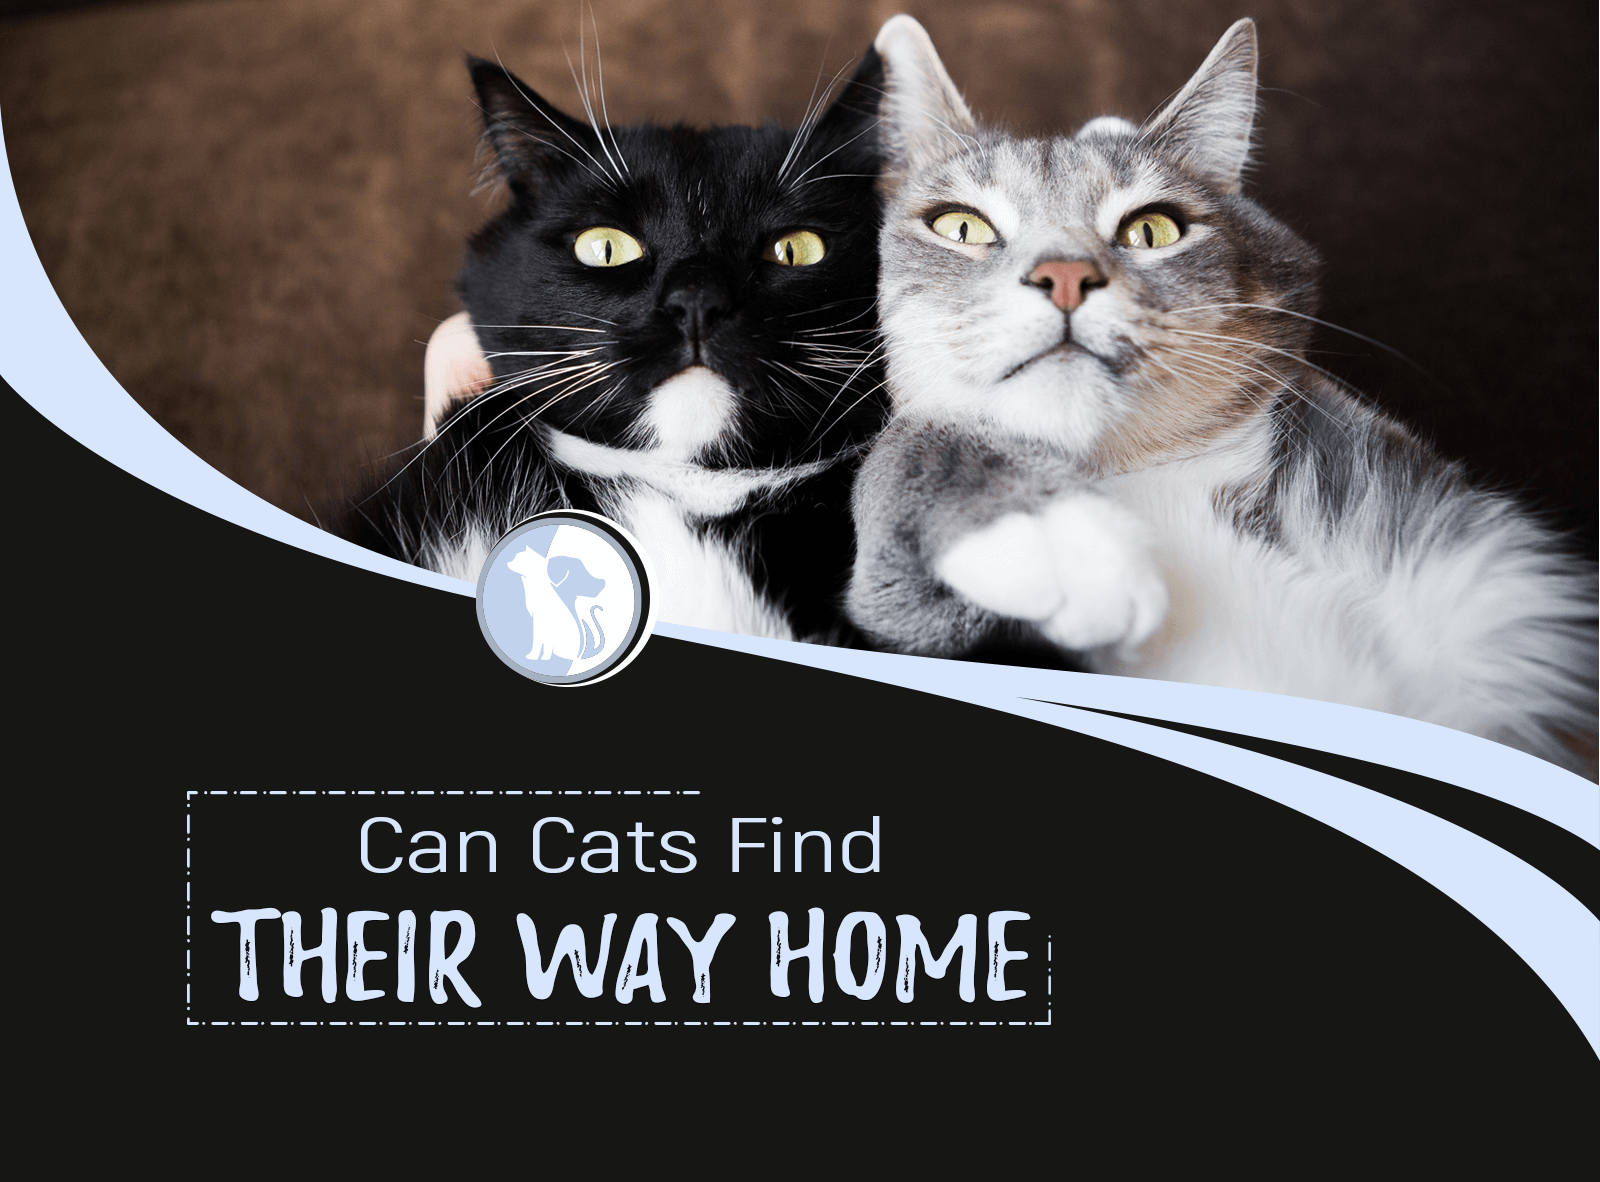 Can Cats Find Their Way Home?